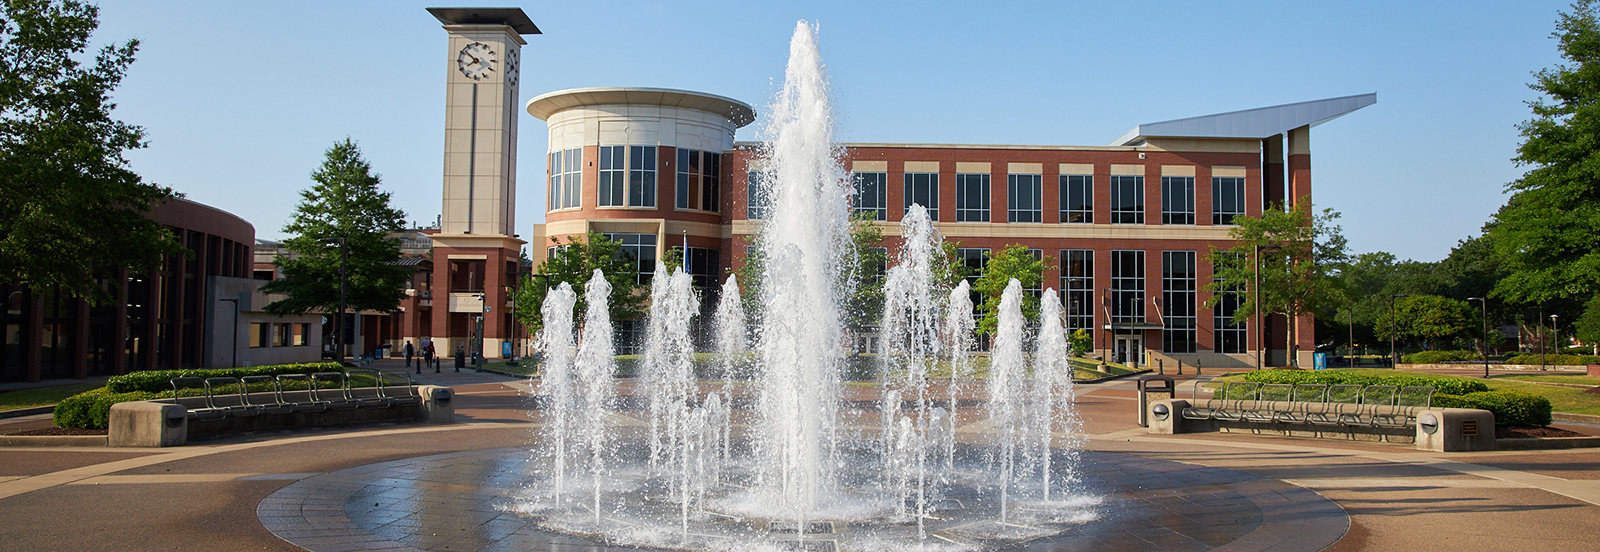 university center with fountain in foreground